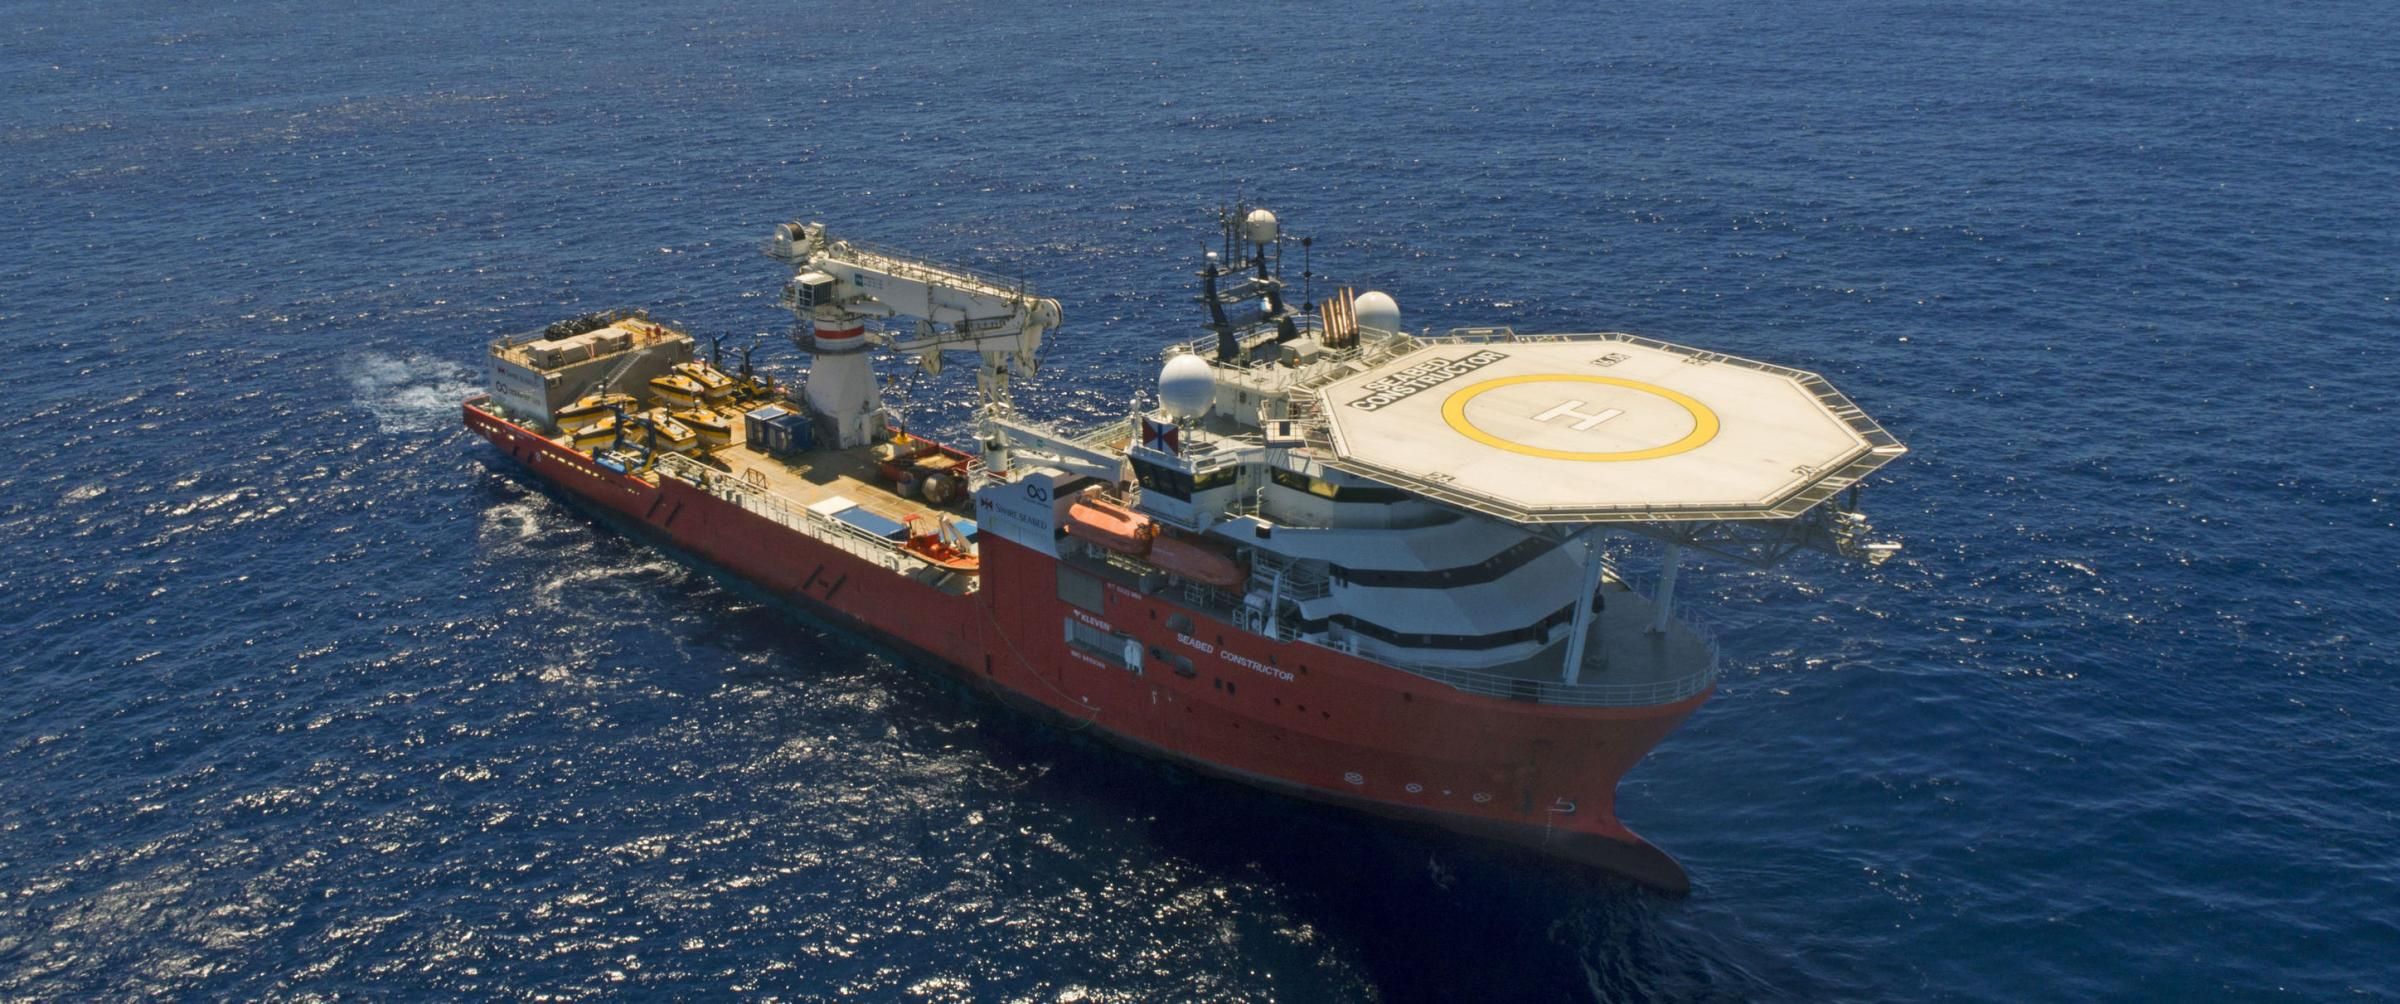 Ocean Infinity vessel 'Seabed Constructor' has been dispatched to the southern Indian Ocean to search for wreckage. Photograph: AP